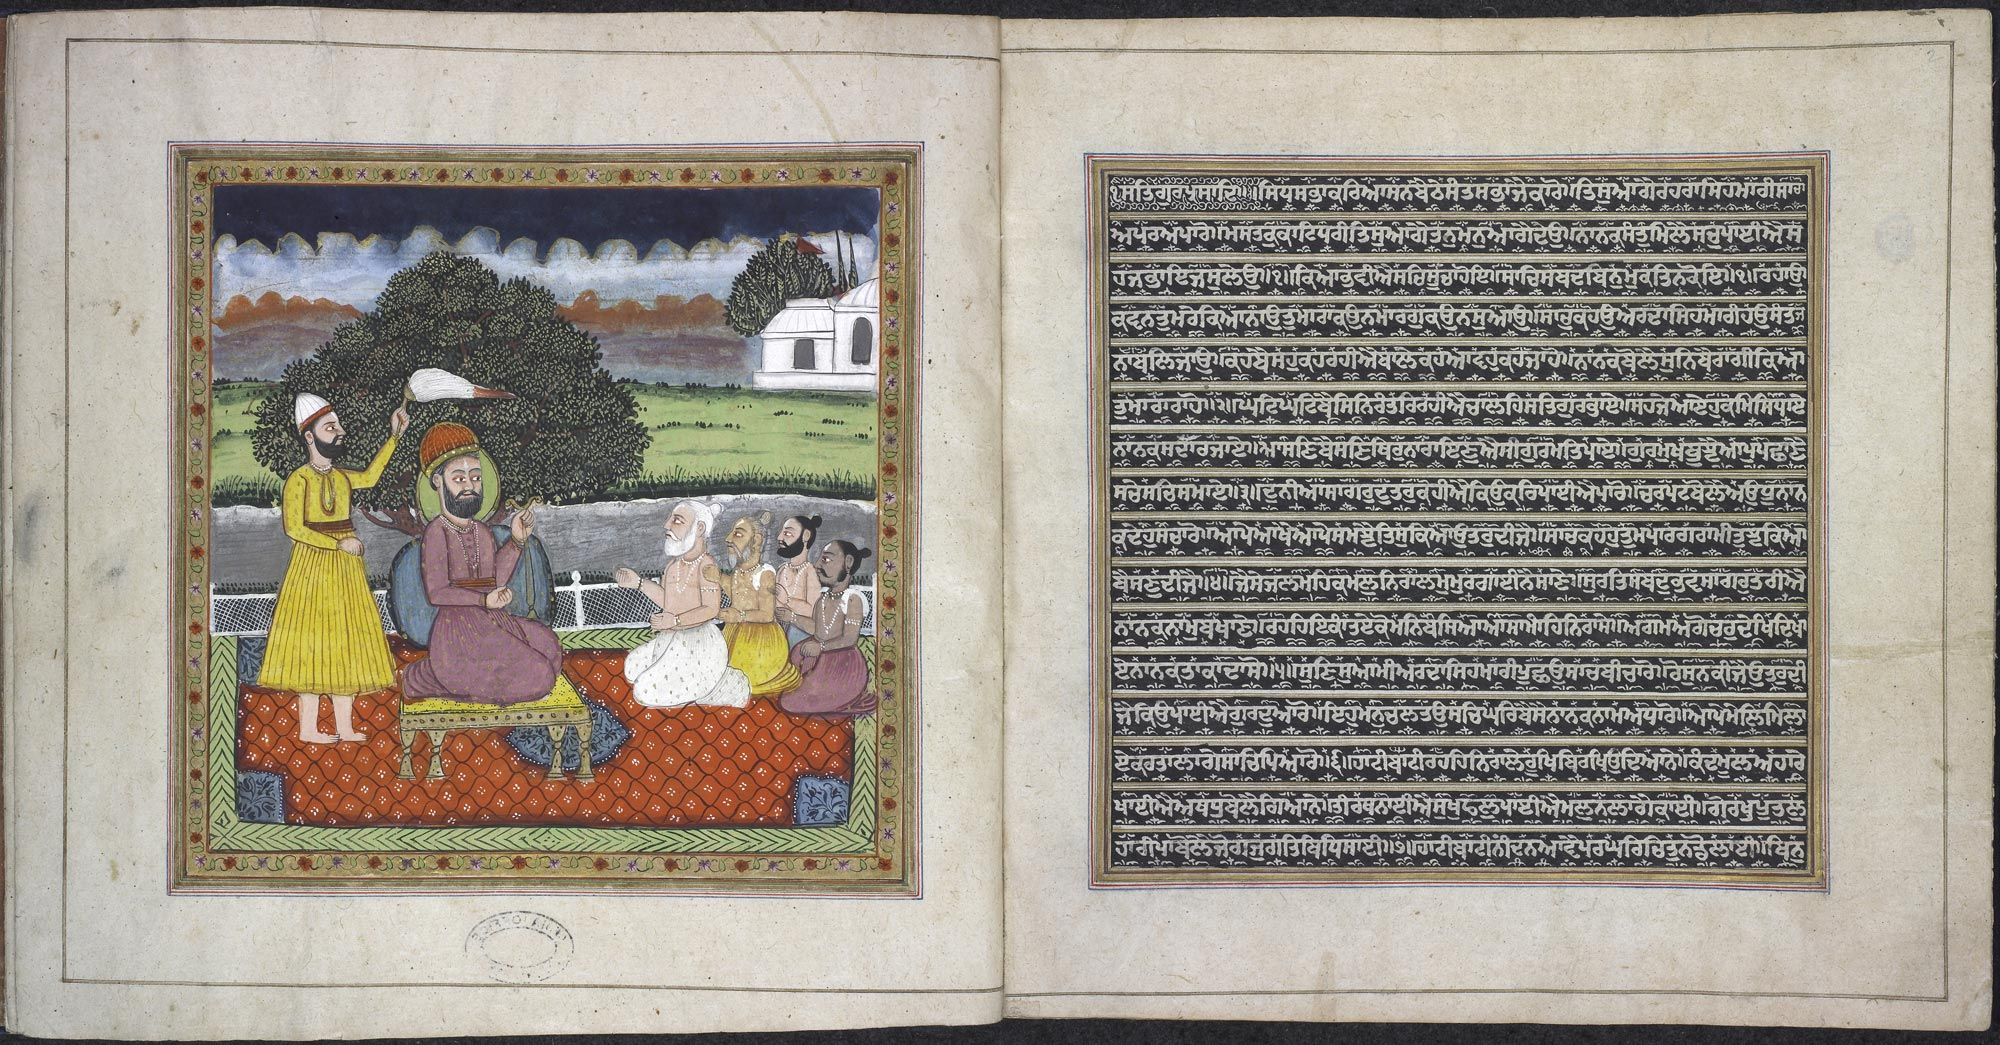 The Prayer Book of Rani Jindan, prepared in the early 19th century. Copyright: British Library Board